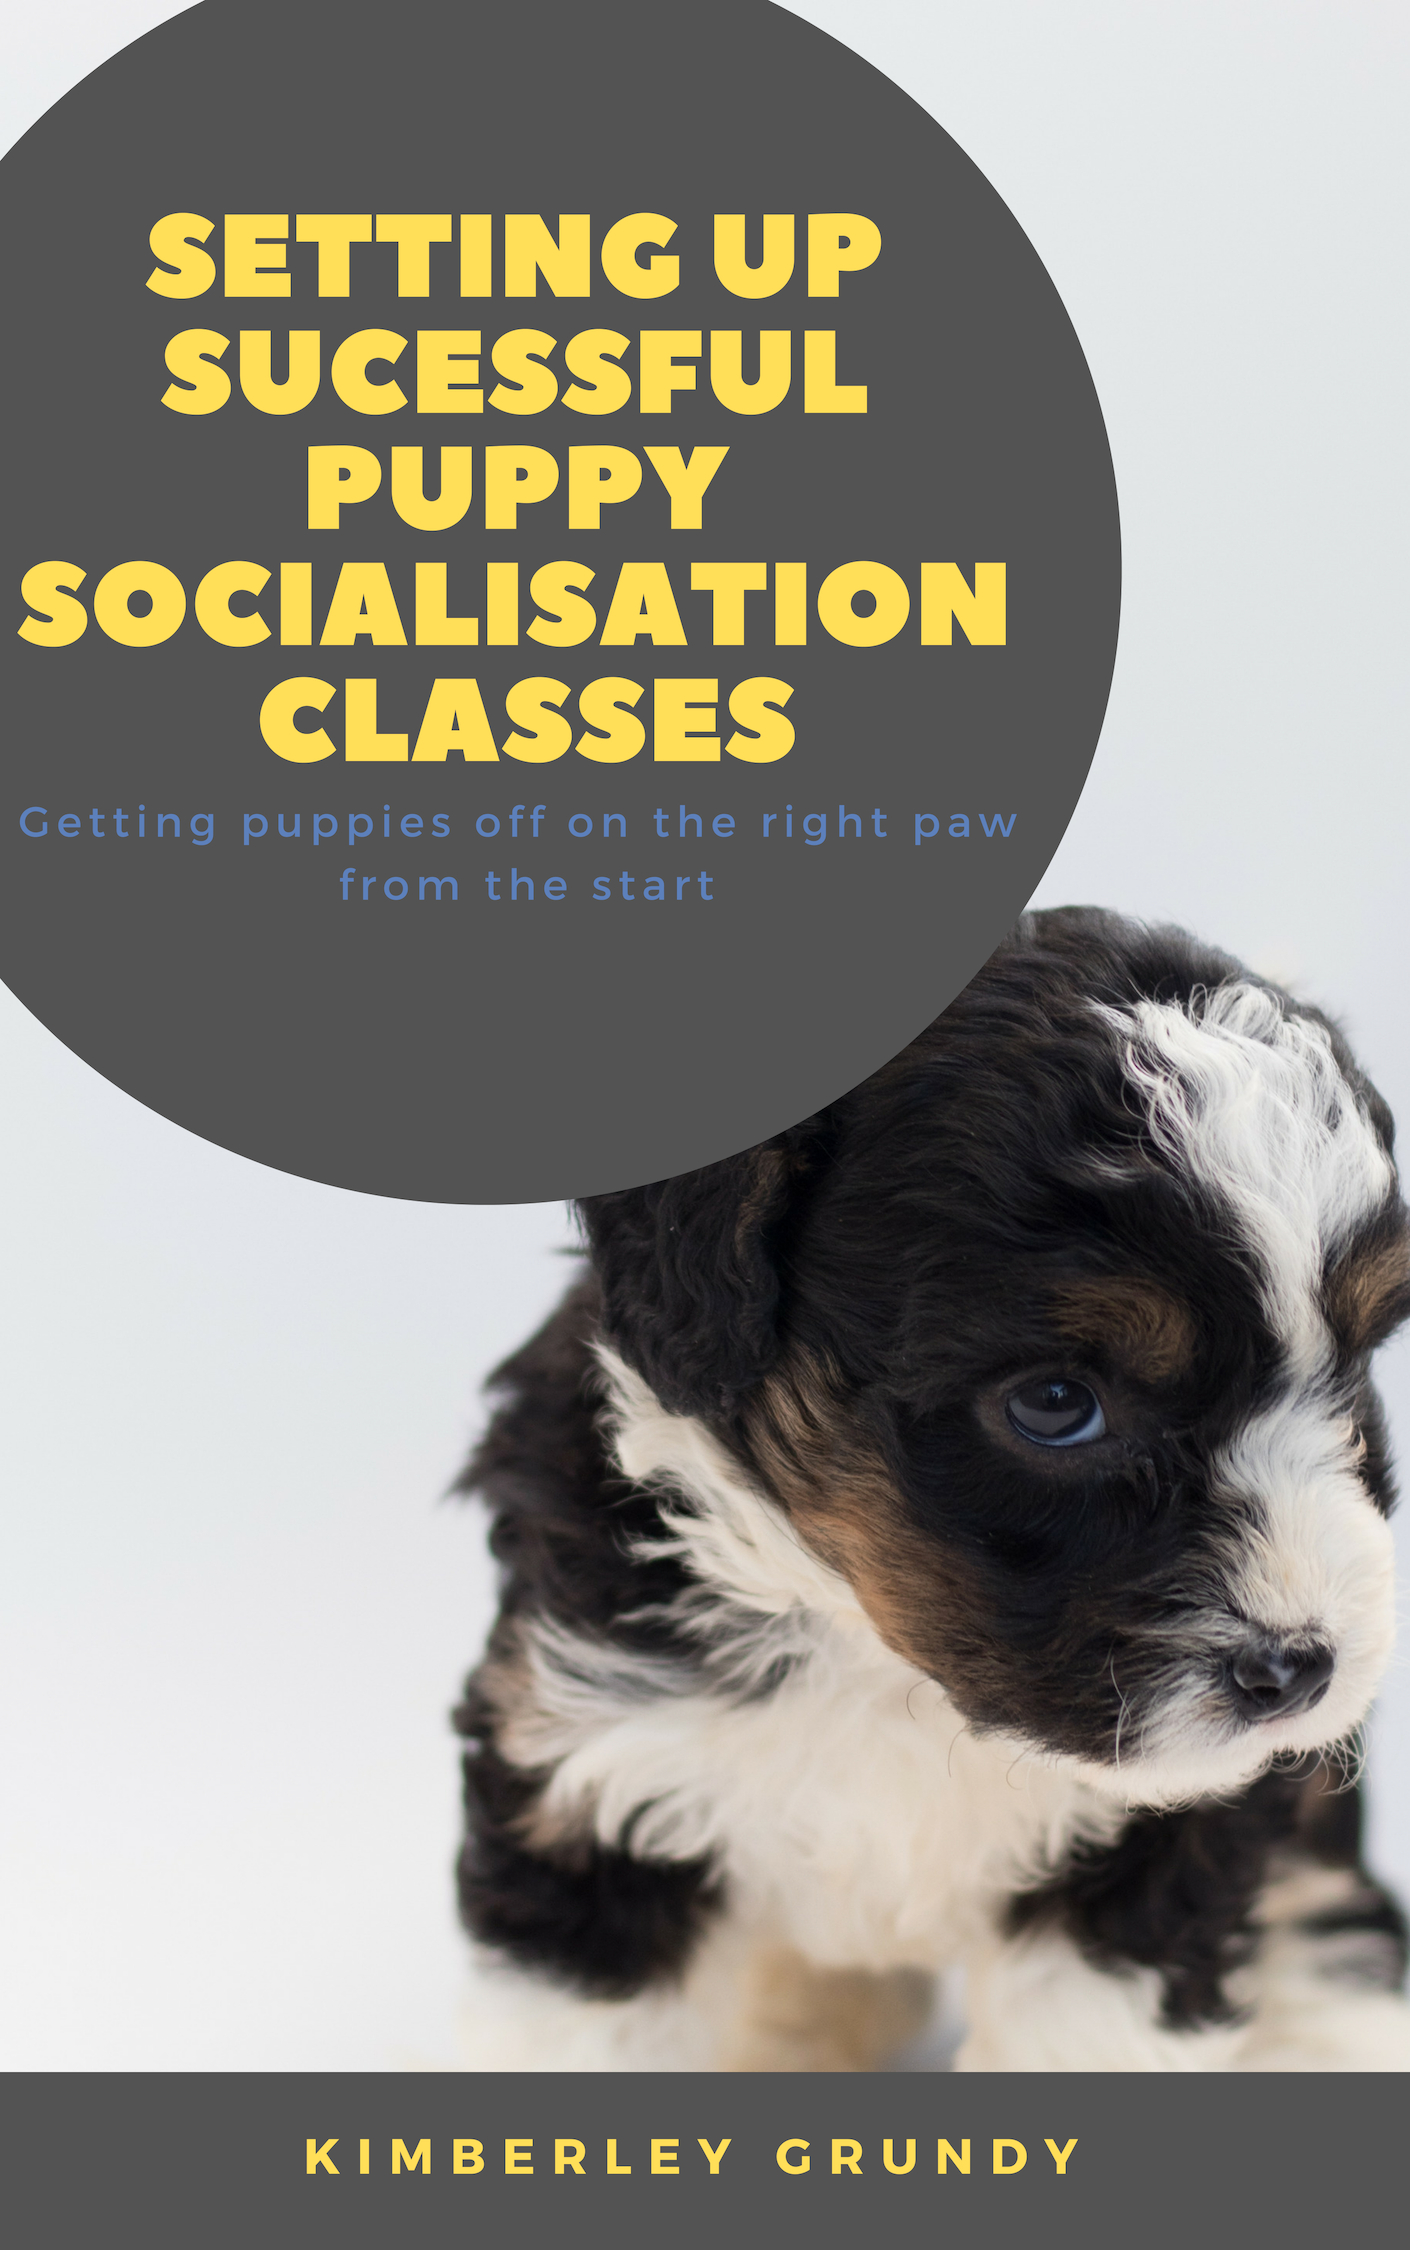 Setting up sucessful puppy socialisation classes.jpg